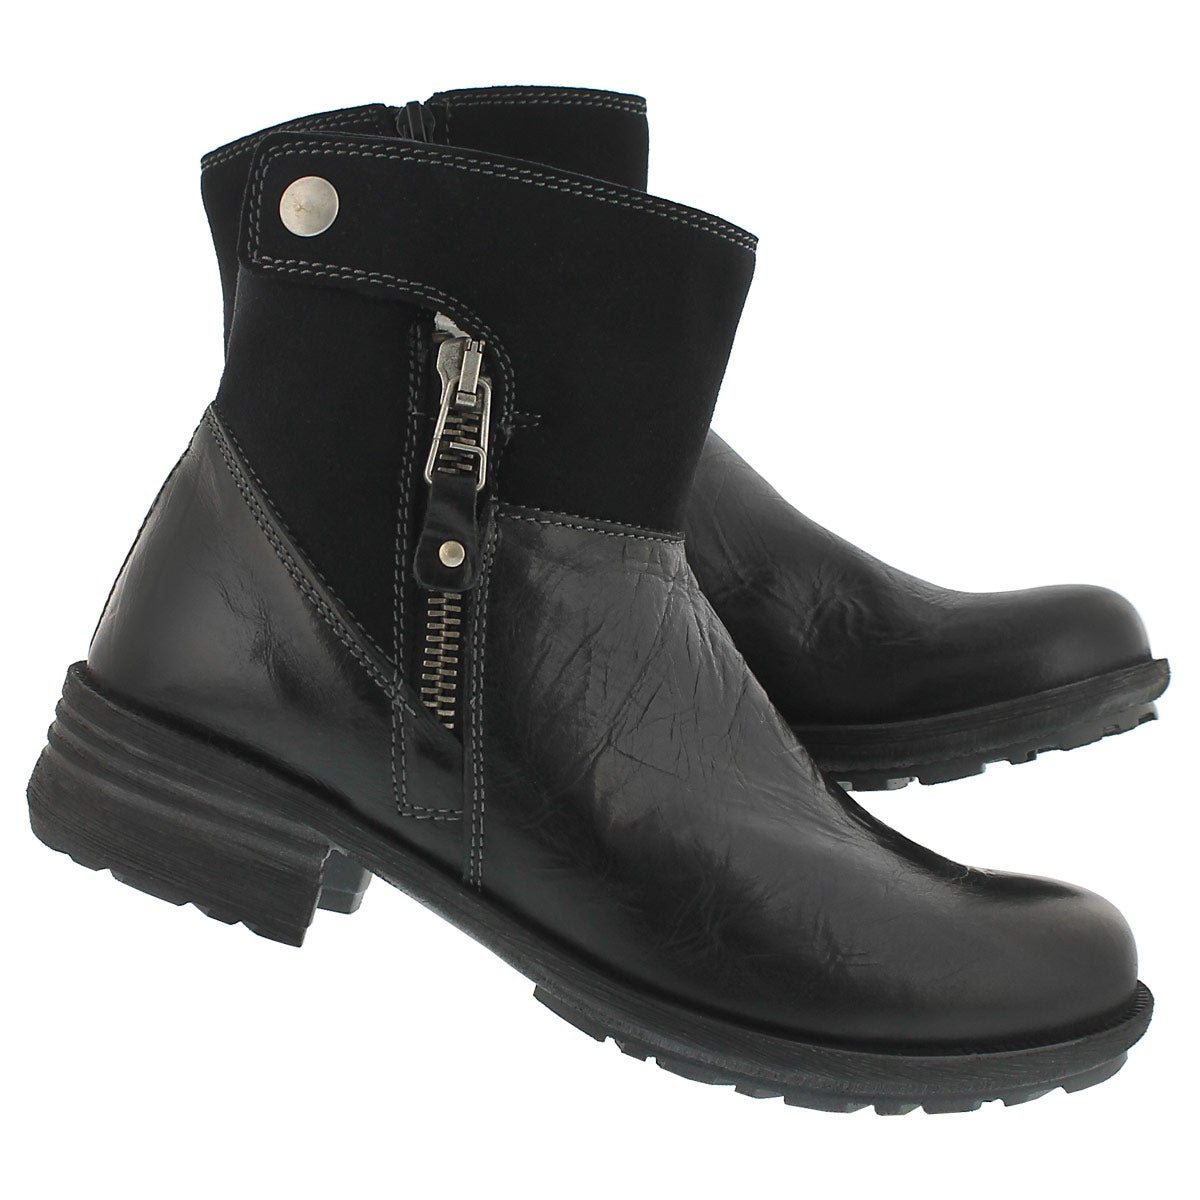 Lds Sandra 24 blk lthr zip up ankle boot